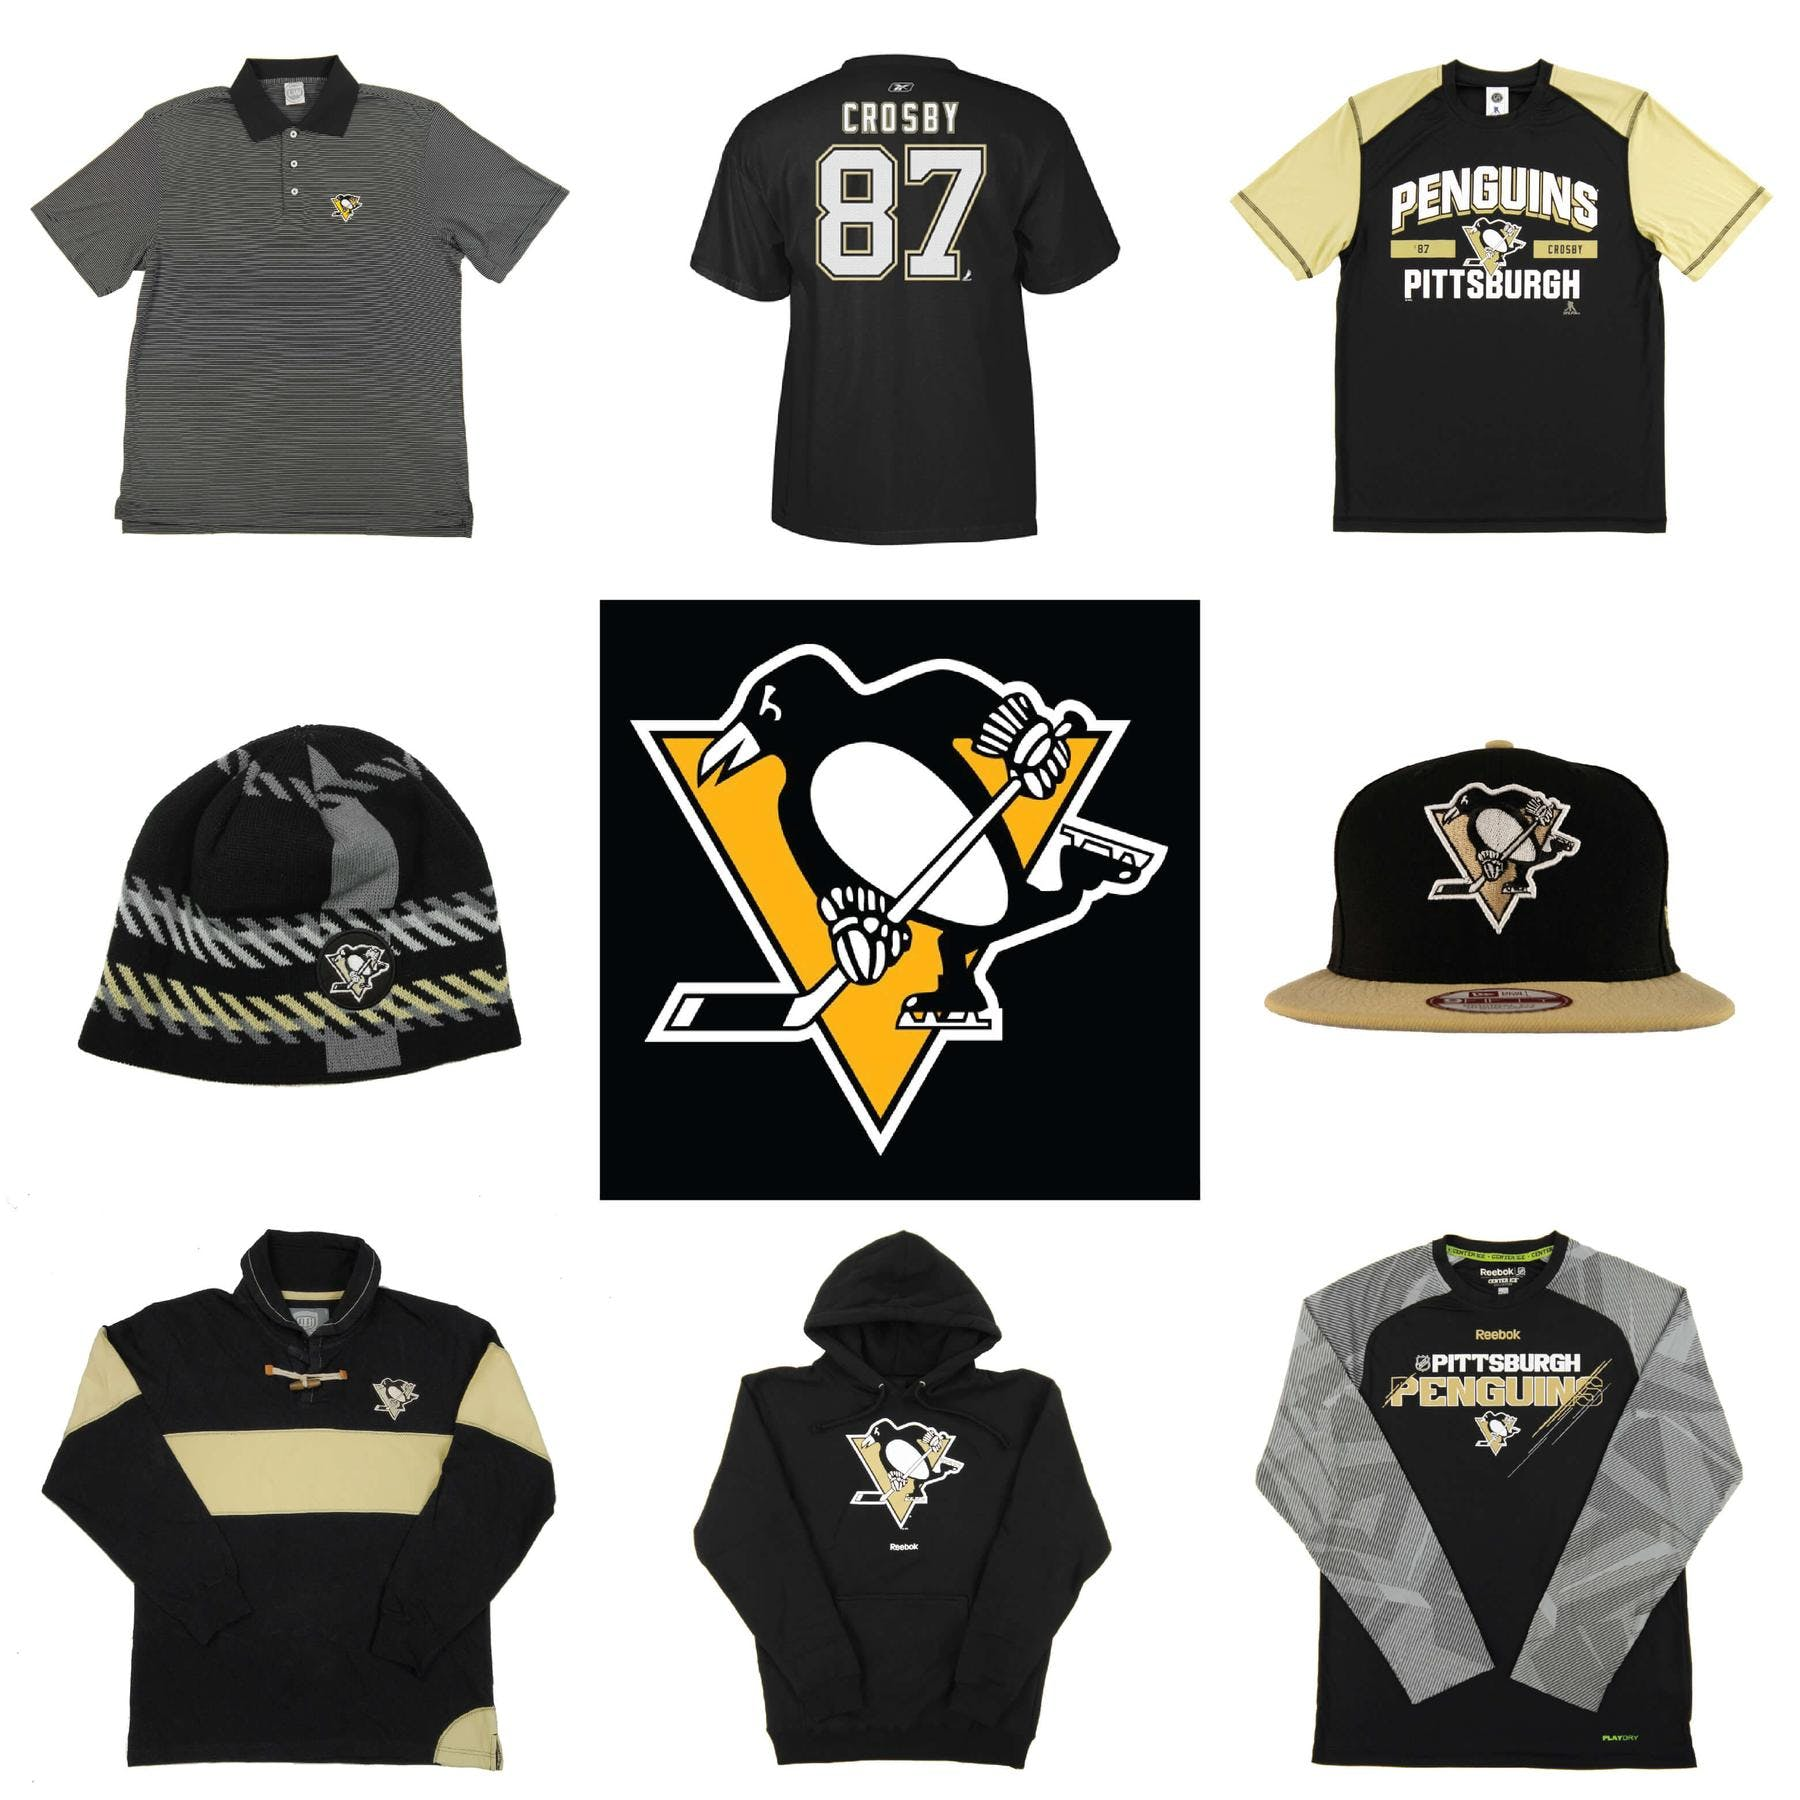 factory price 159c4 621a5 Pittsburgh Penguins Officially Licensed NHL Apparel Liquidation - 4,870+  Items,  176,000+ SRP!   DA Card World